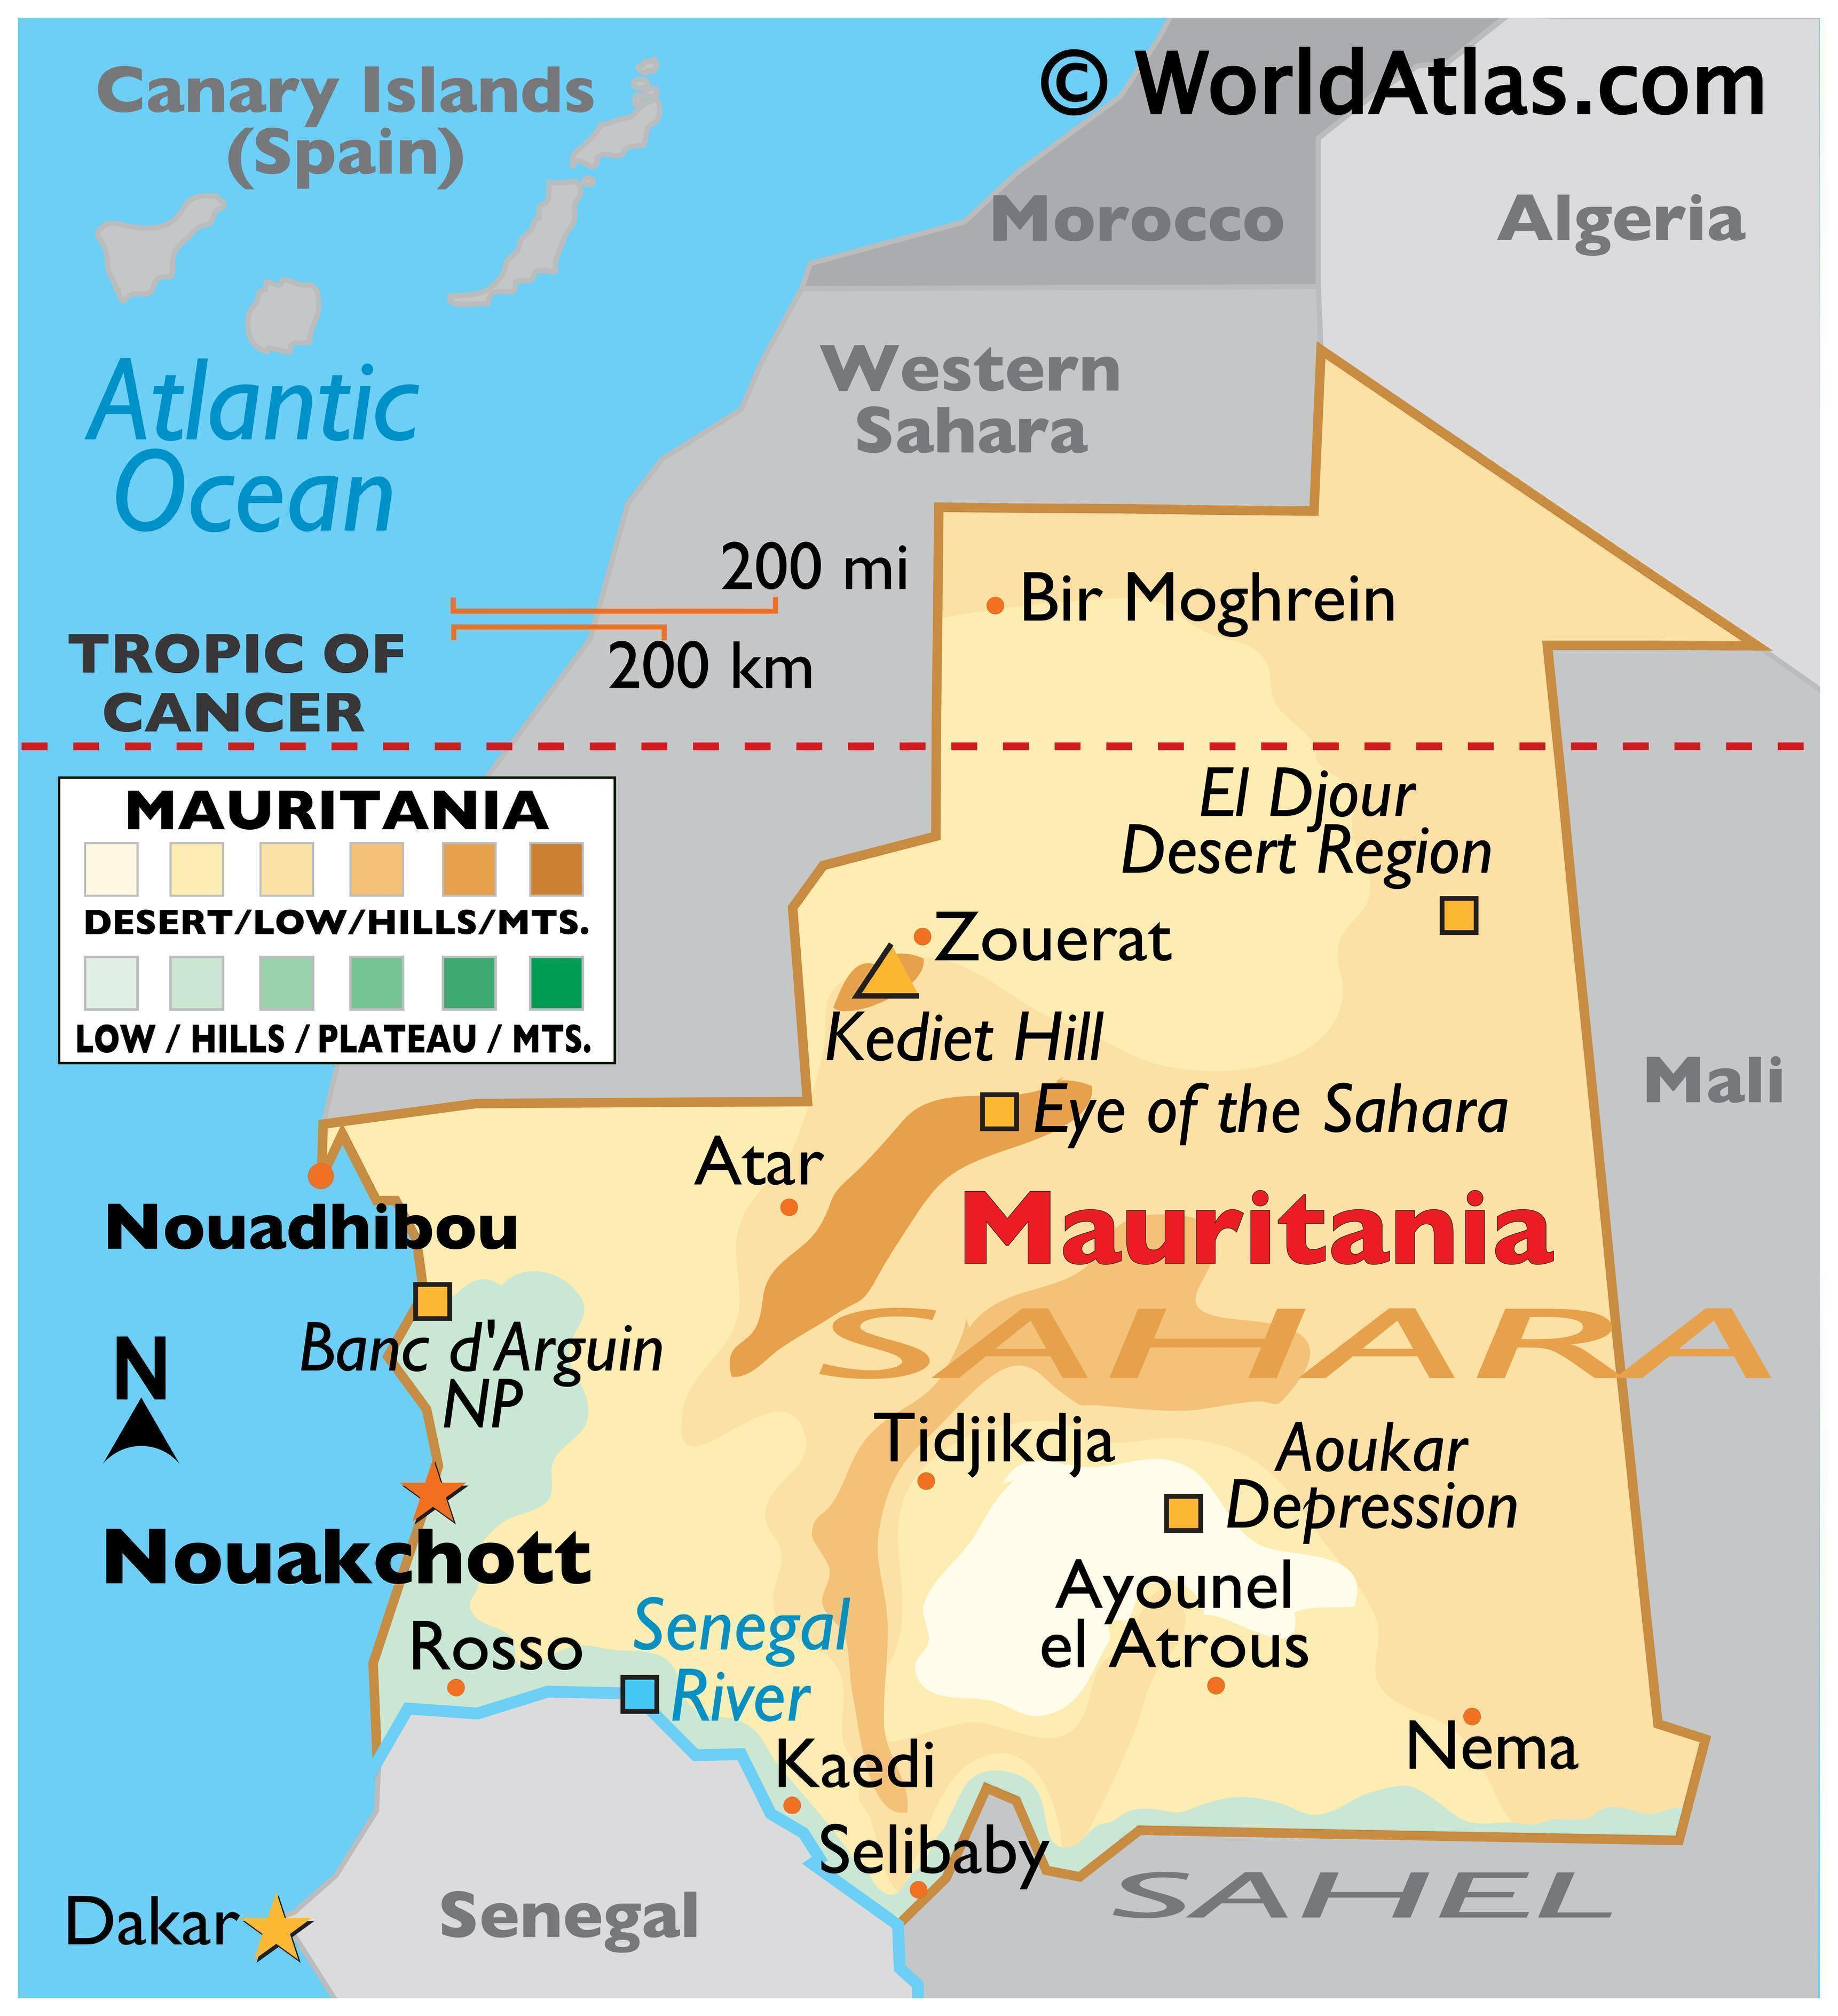 Physical Map of Mauritania with state boundaries, relief, desert features, highest peak, and more.